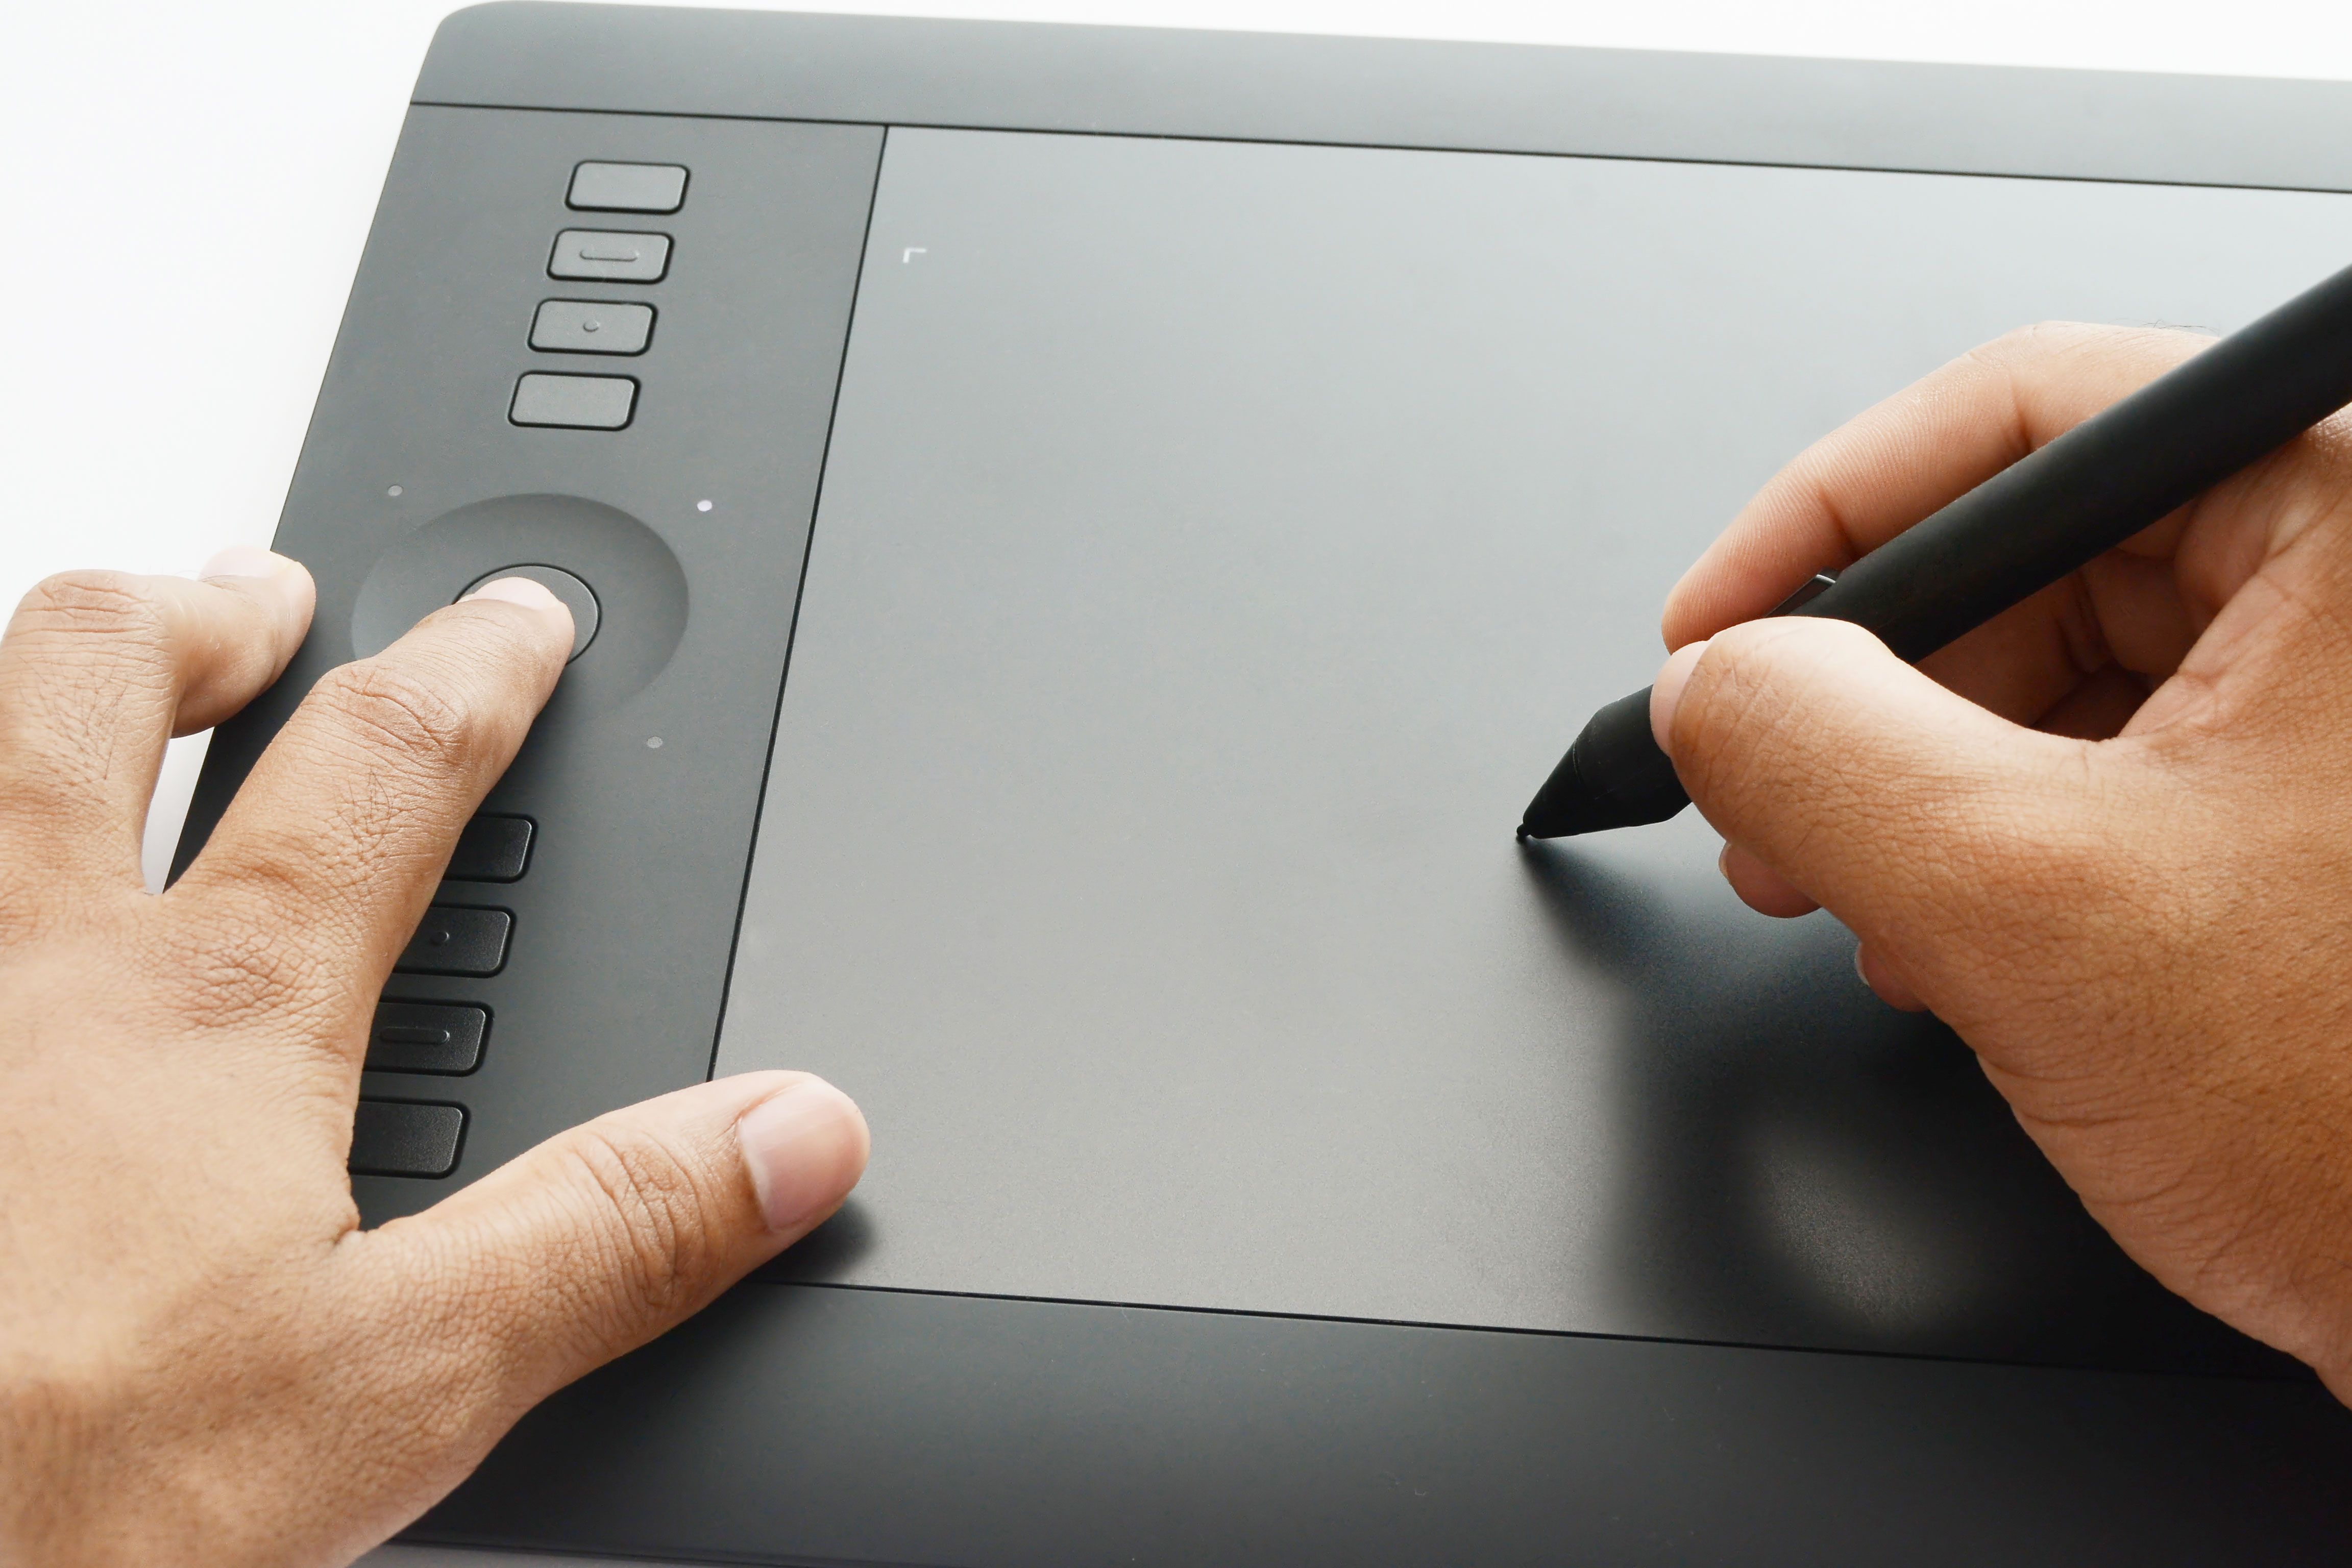 Pool Designers Explora Wacom Intuos Pen Touch Small Tablet Version Wacom Intuos Pen Wacom Intuos Pro Professional Pen Touch Tablet Wacom Touch Small Tablet Ctl480 dpreview Wacom Intuos Pen And Touch Small Tablet